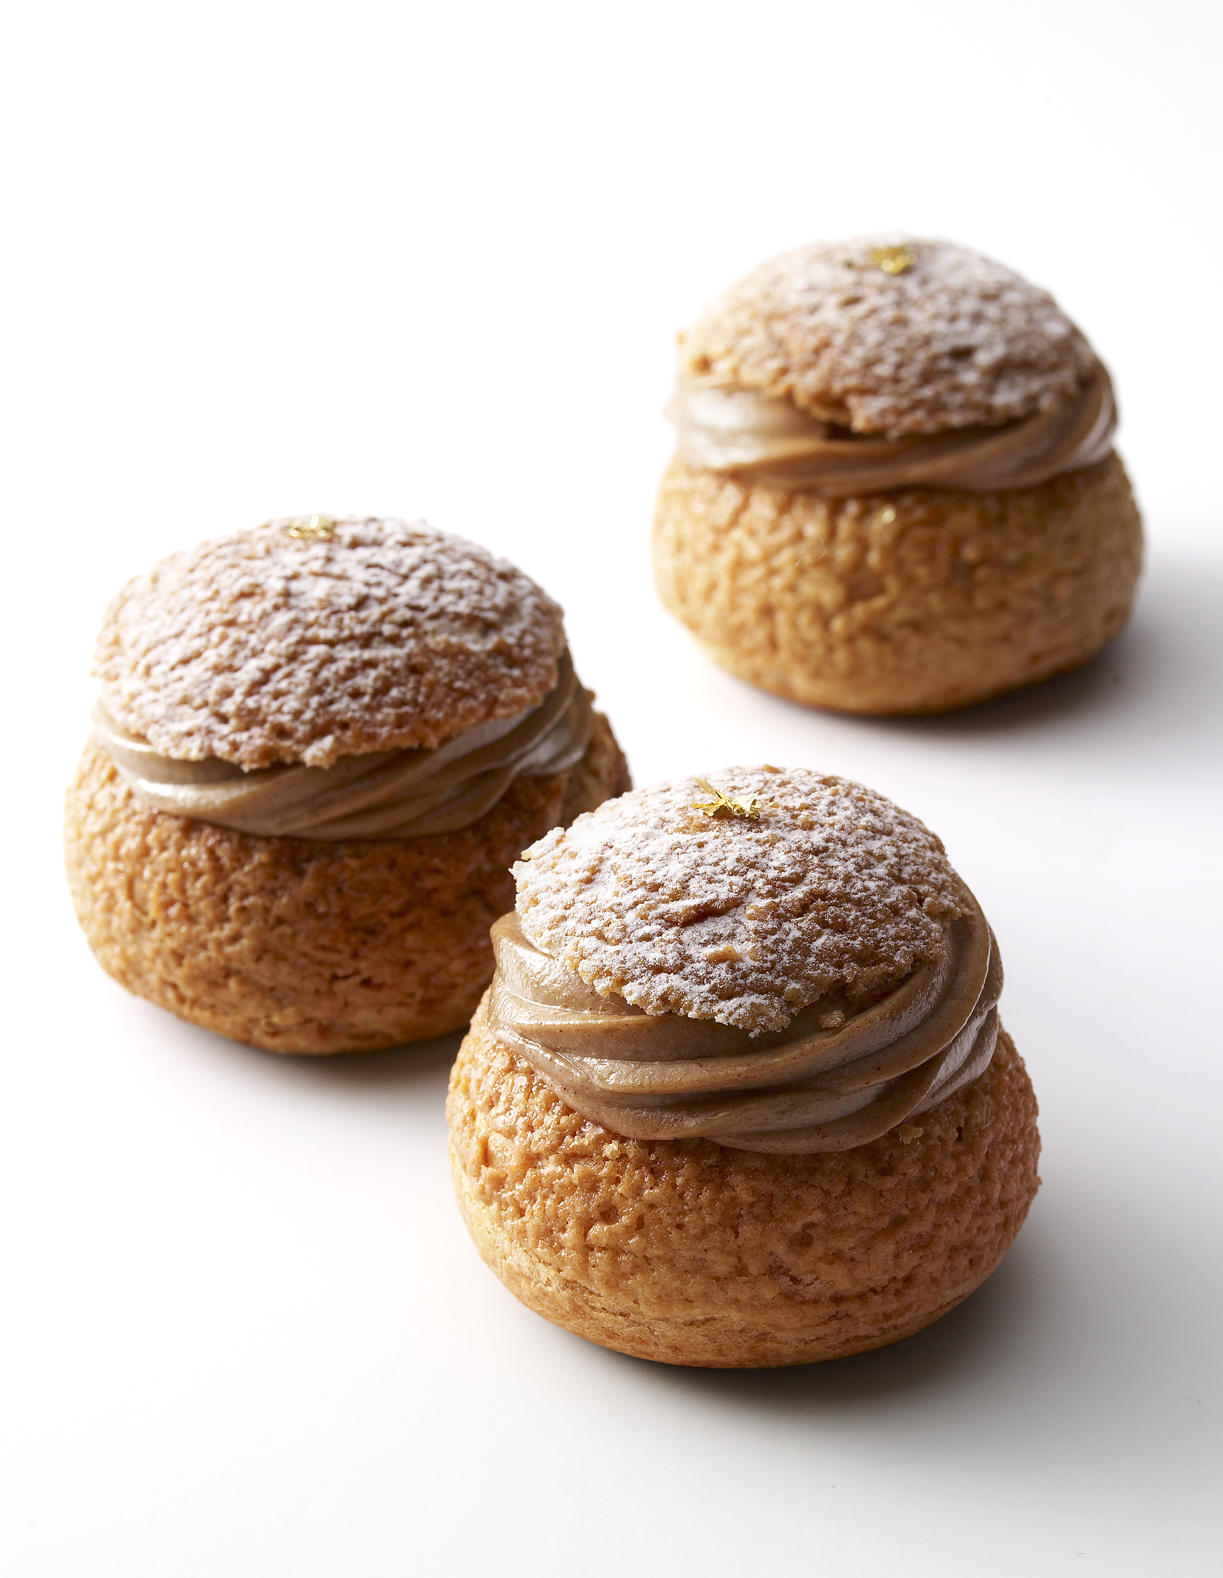 Paris Brest- Delicatessen